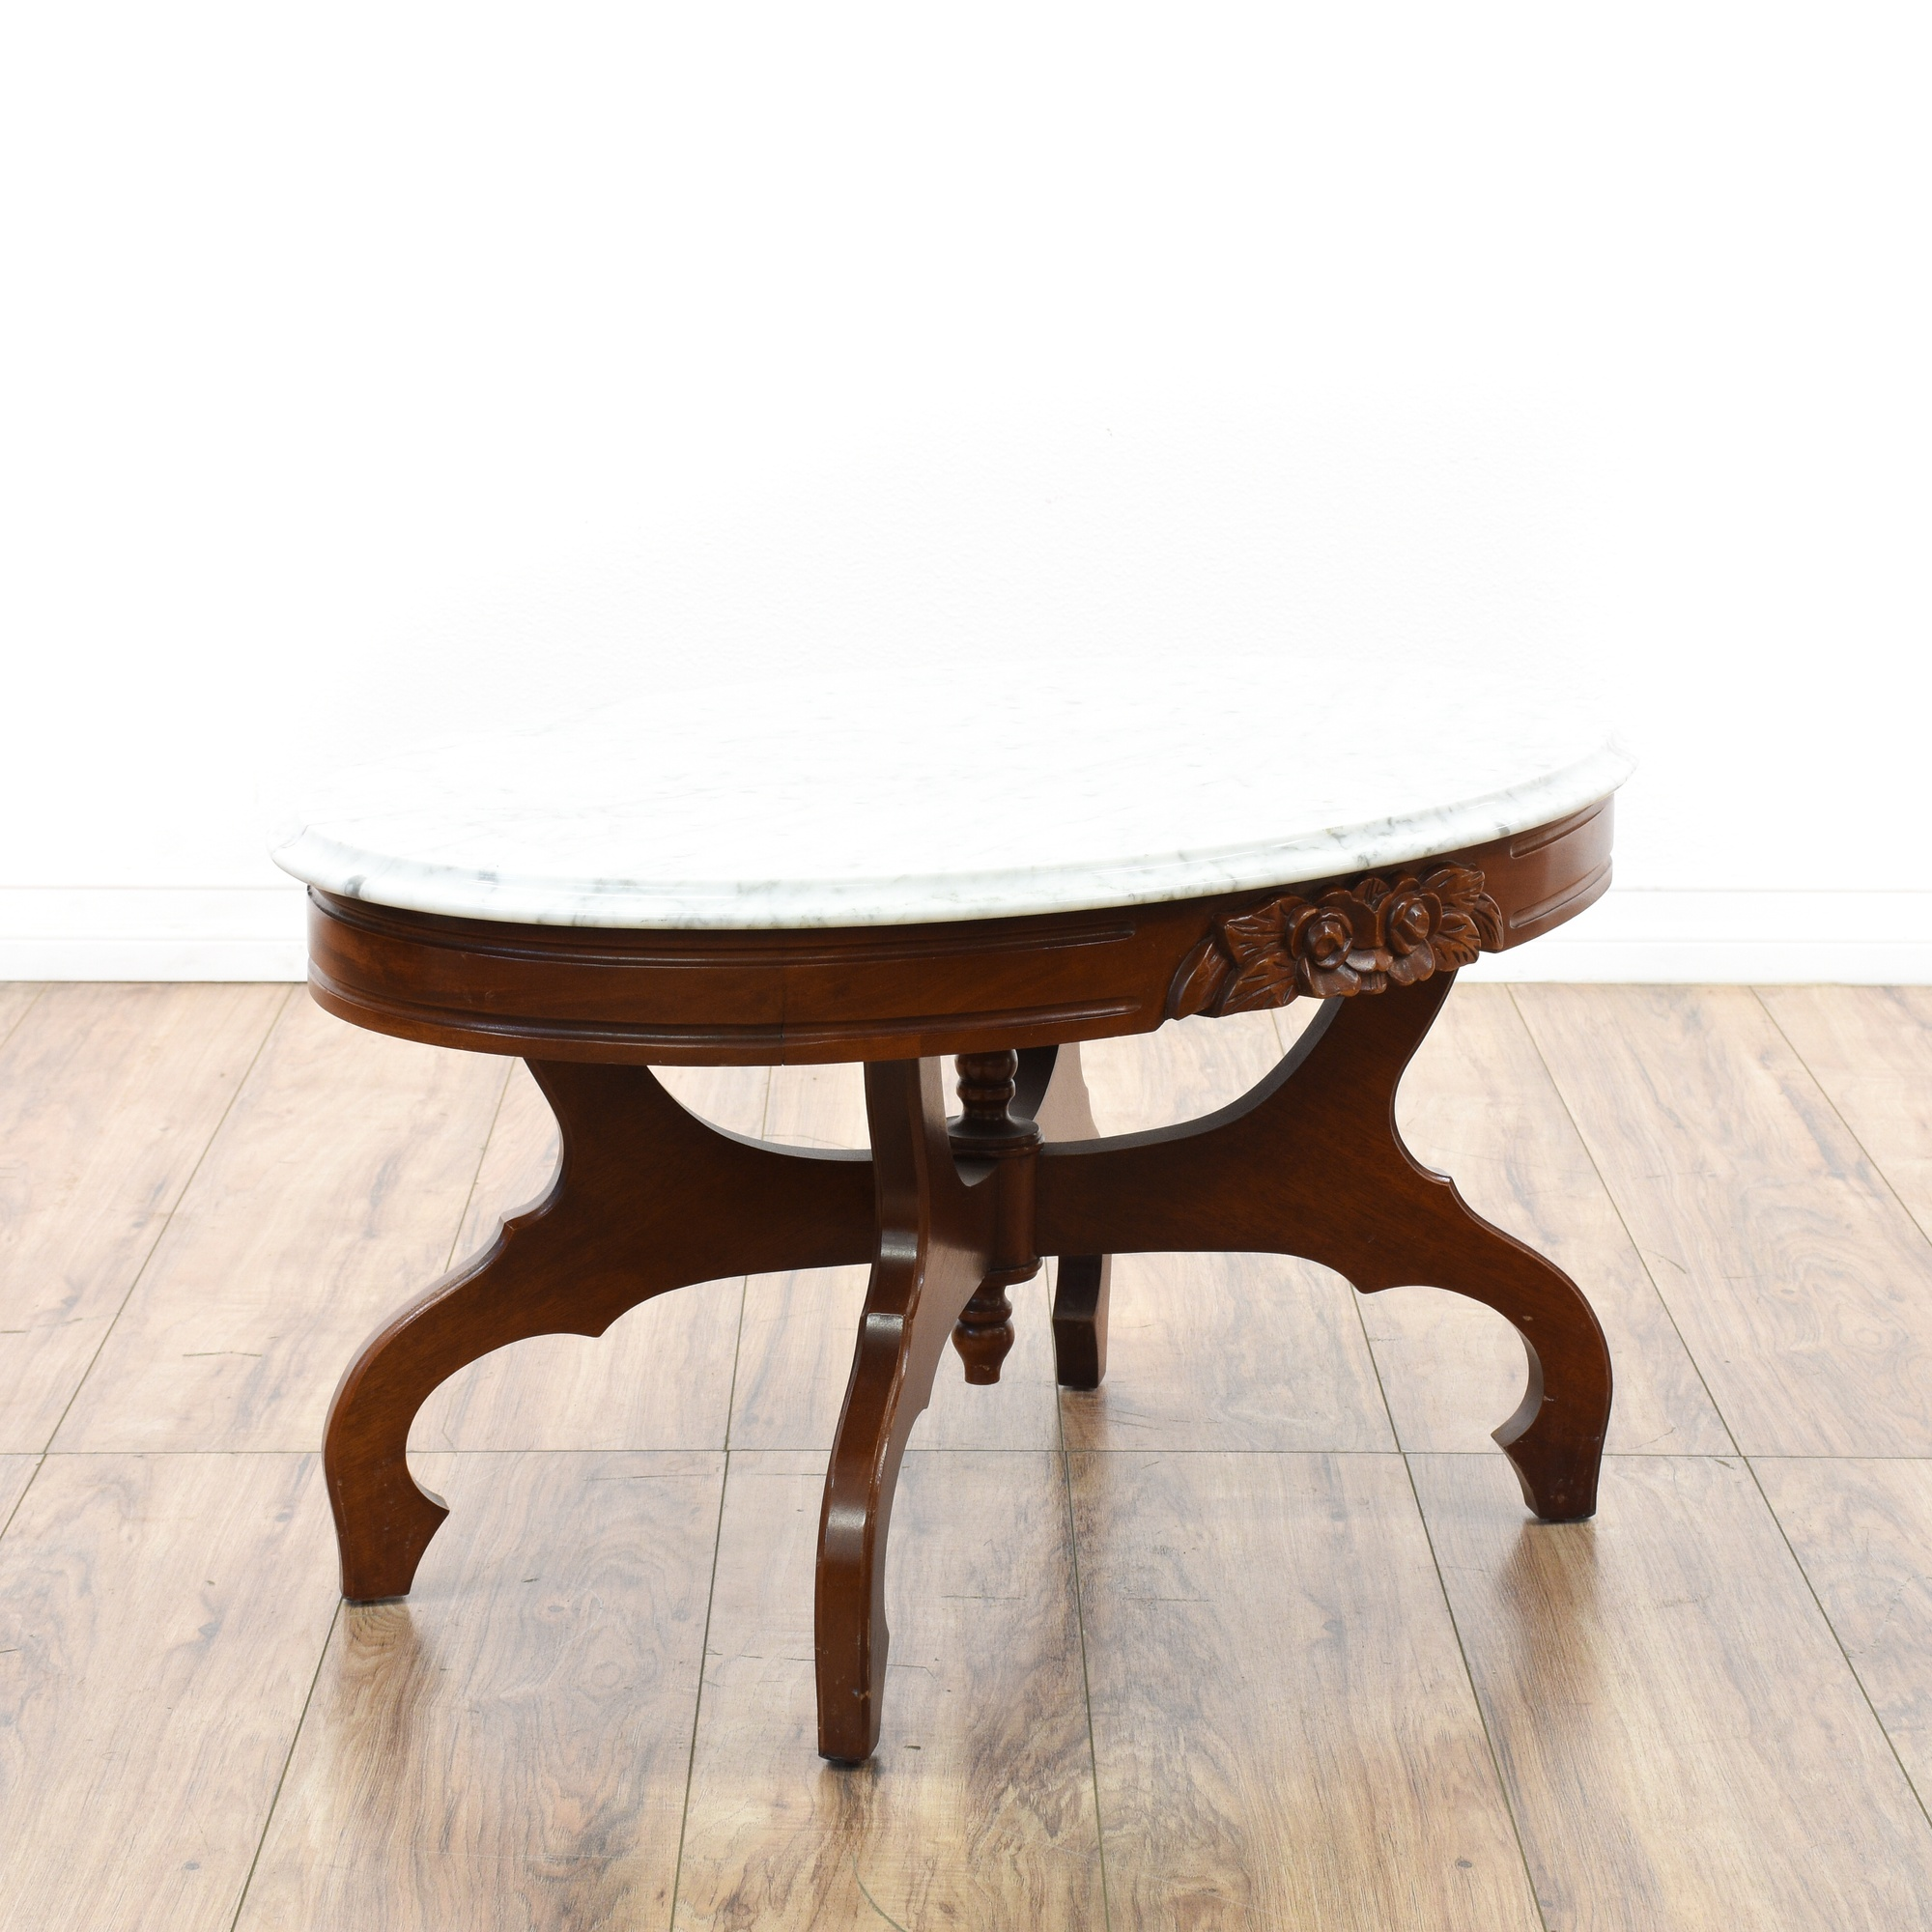 Old Marble Top Coffee Table: Victorian Cherry Carved Marble Top Coffee Table